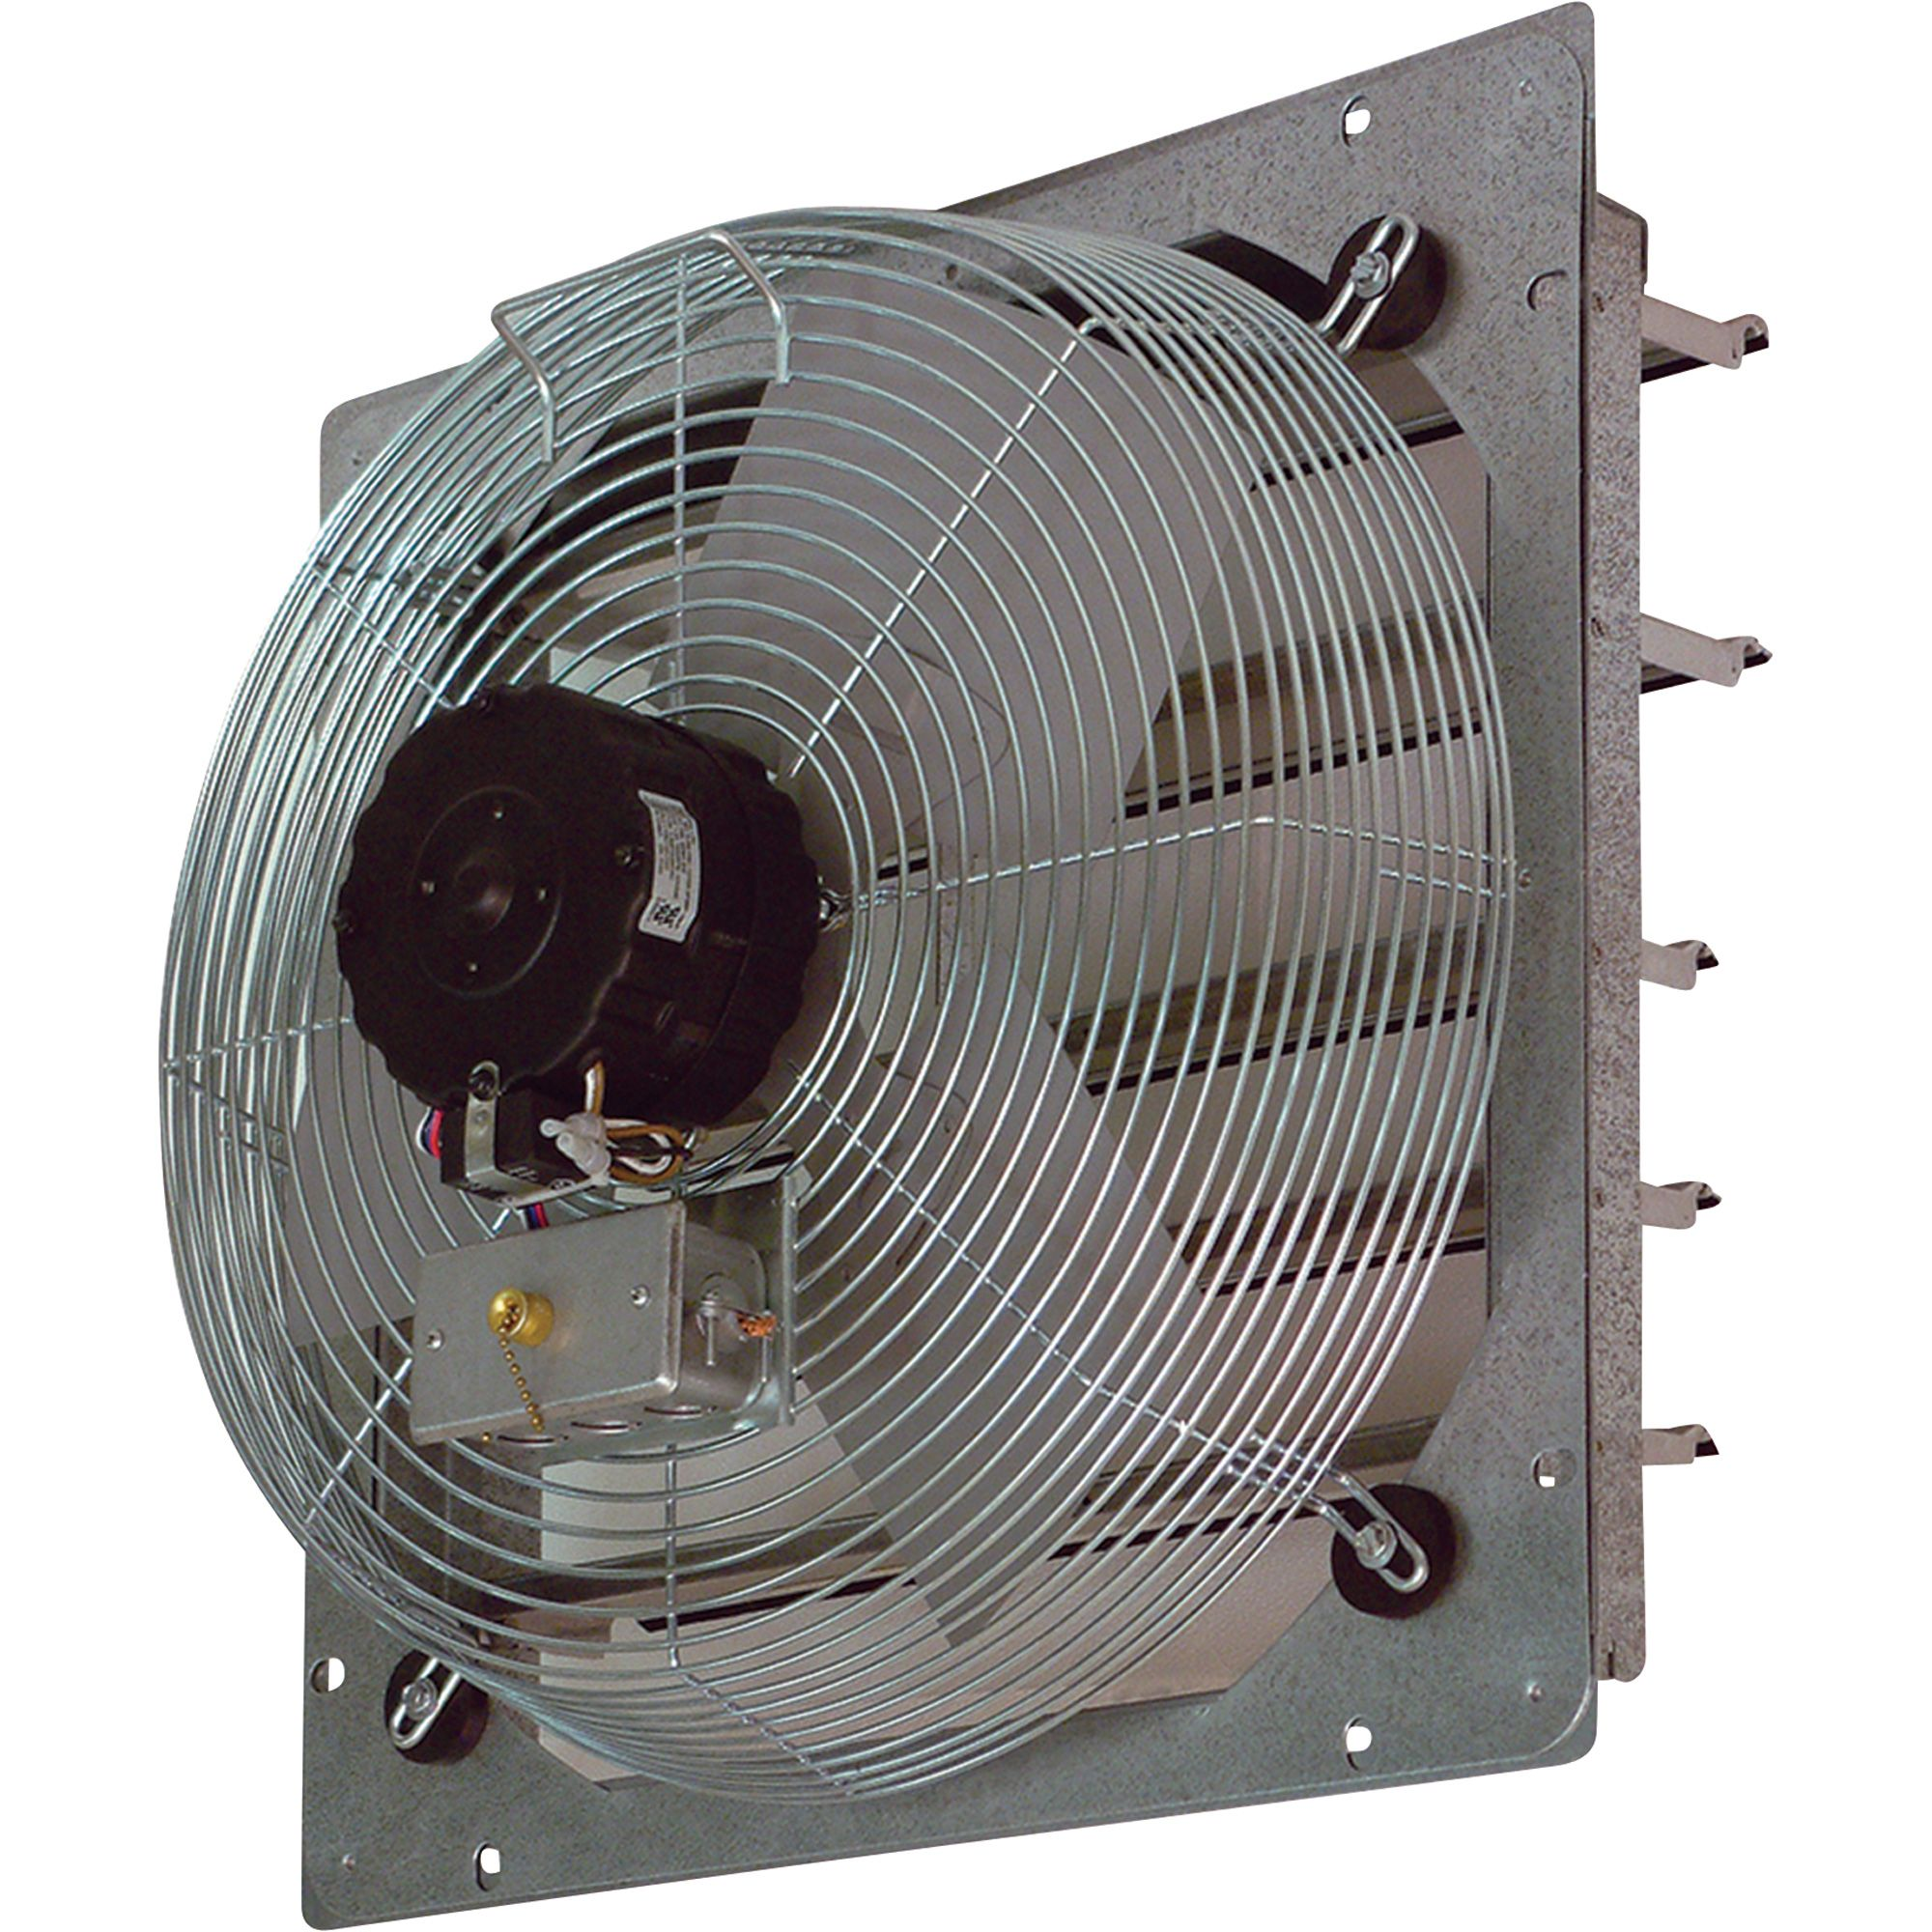 Tpi Shutter Mounted Direct Drive Exhaust Fan 12in Model Ce 12 Ds Wall Exhaust Fan Exhaust Fan Wall Fans